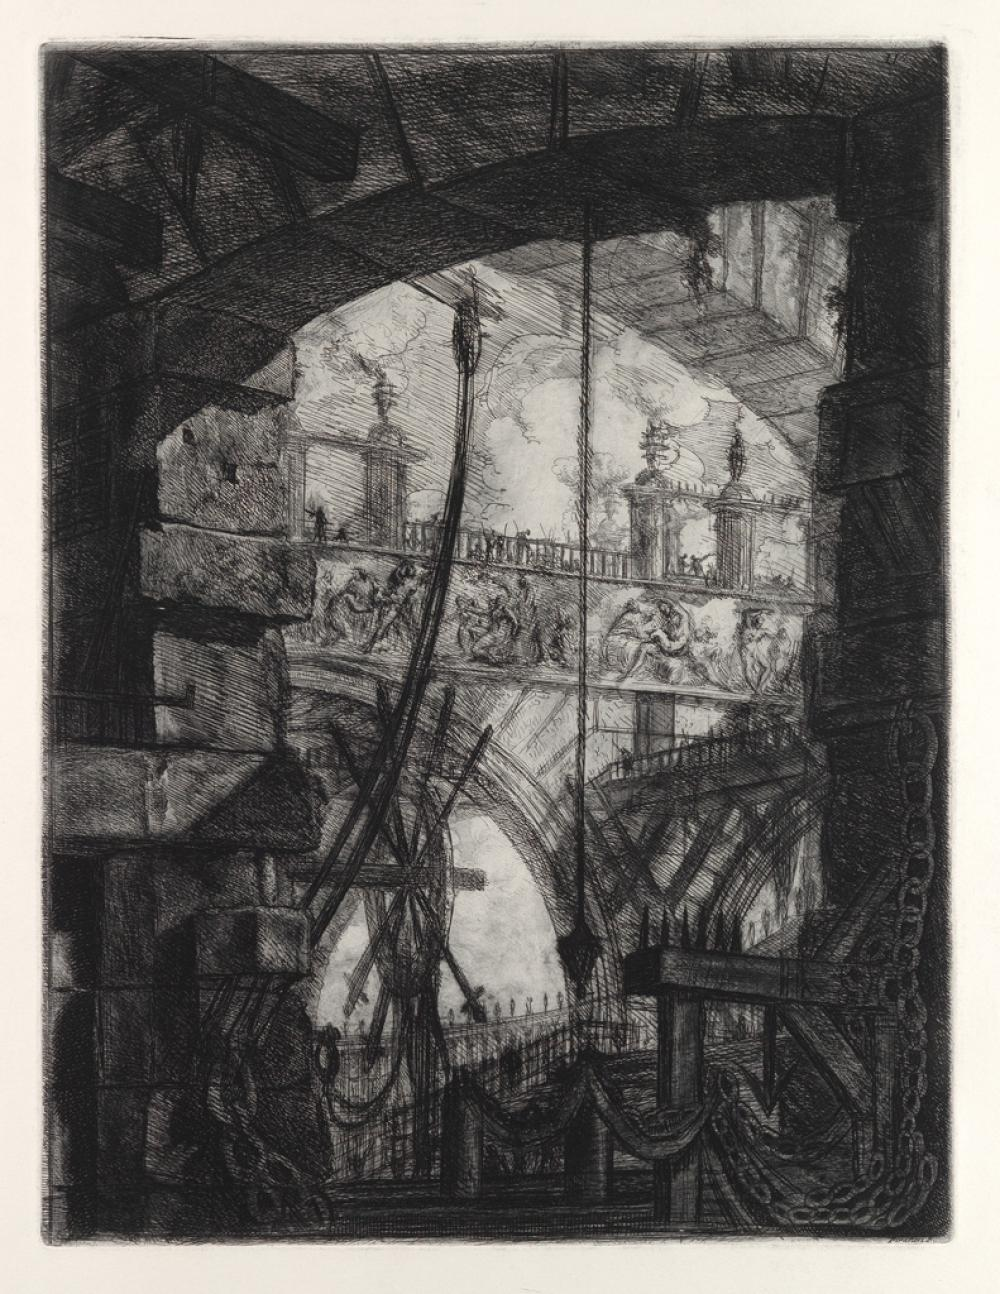 GIOVANNI B. PIRANESI The Grand Piazza.